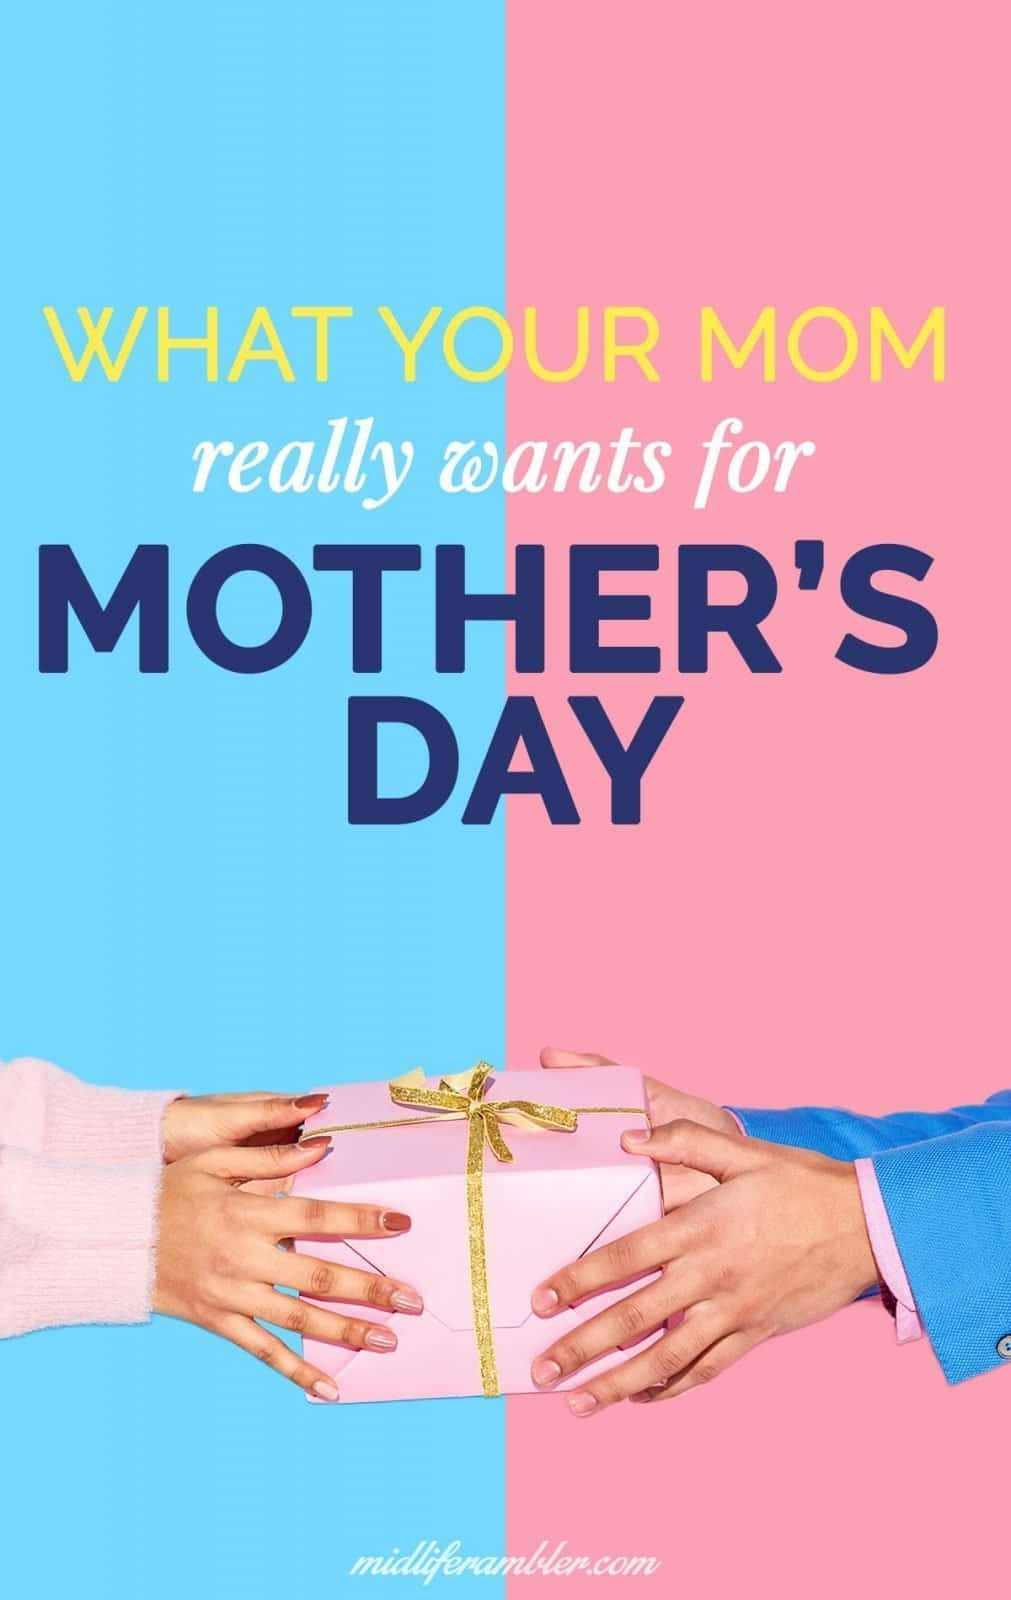 Here's What Your Mom Really Wants for Mother's Day 2